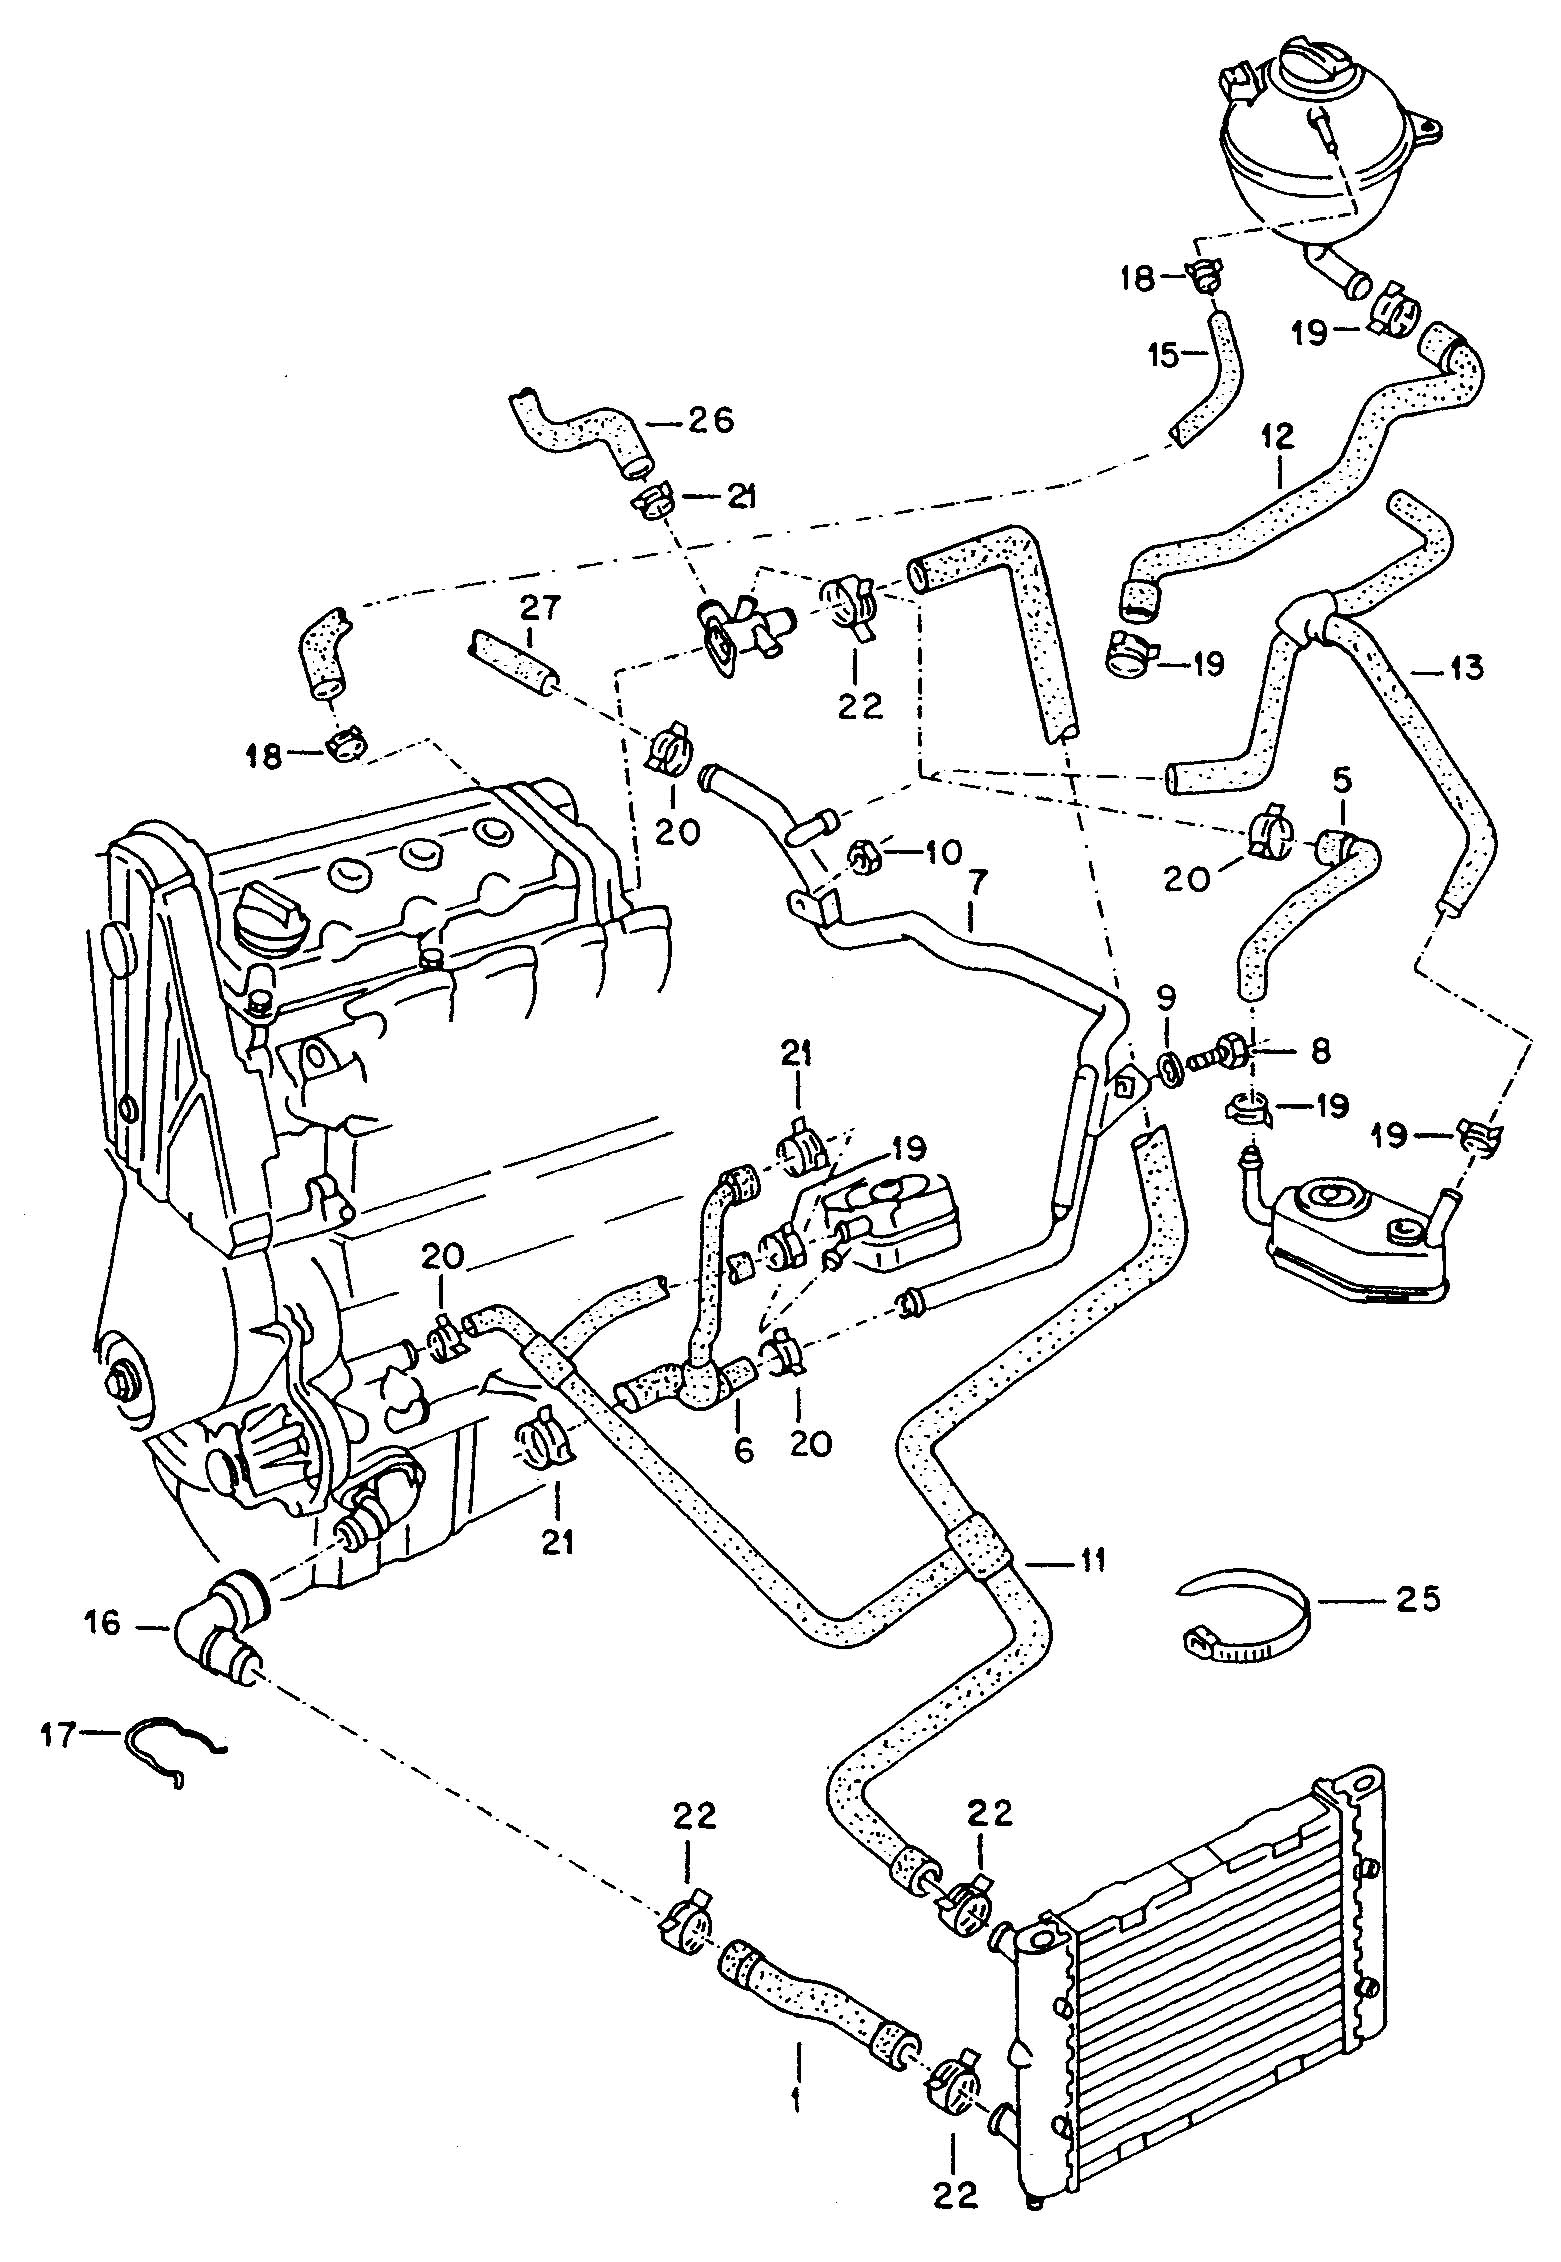 2001 volkswagen beetle parts diagram wiring 3 switches in one box vw jetta vr6 engine within and